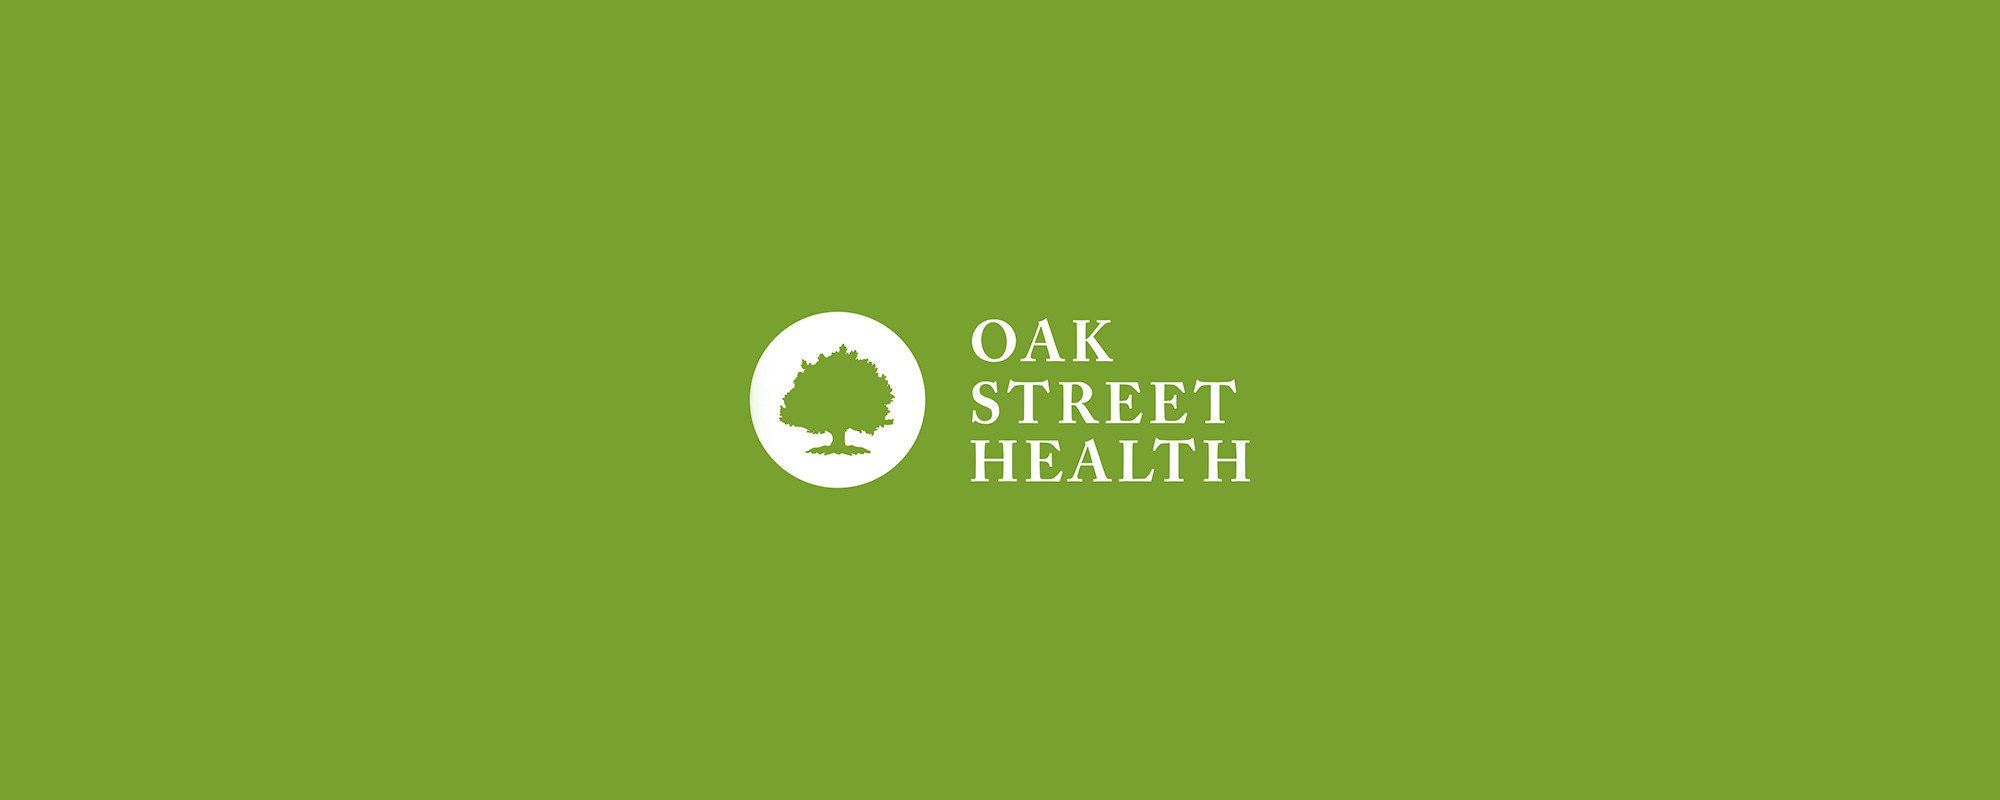 Oak Street Health Selects Burman for 3 New Facilities